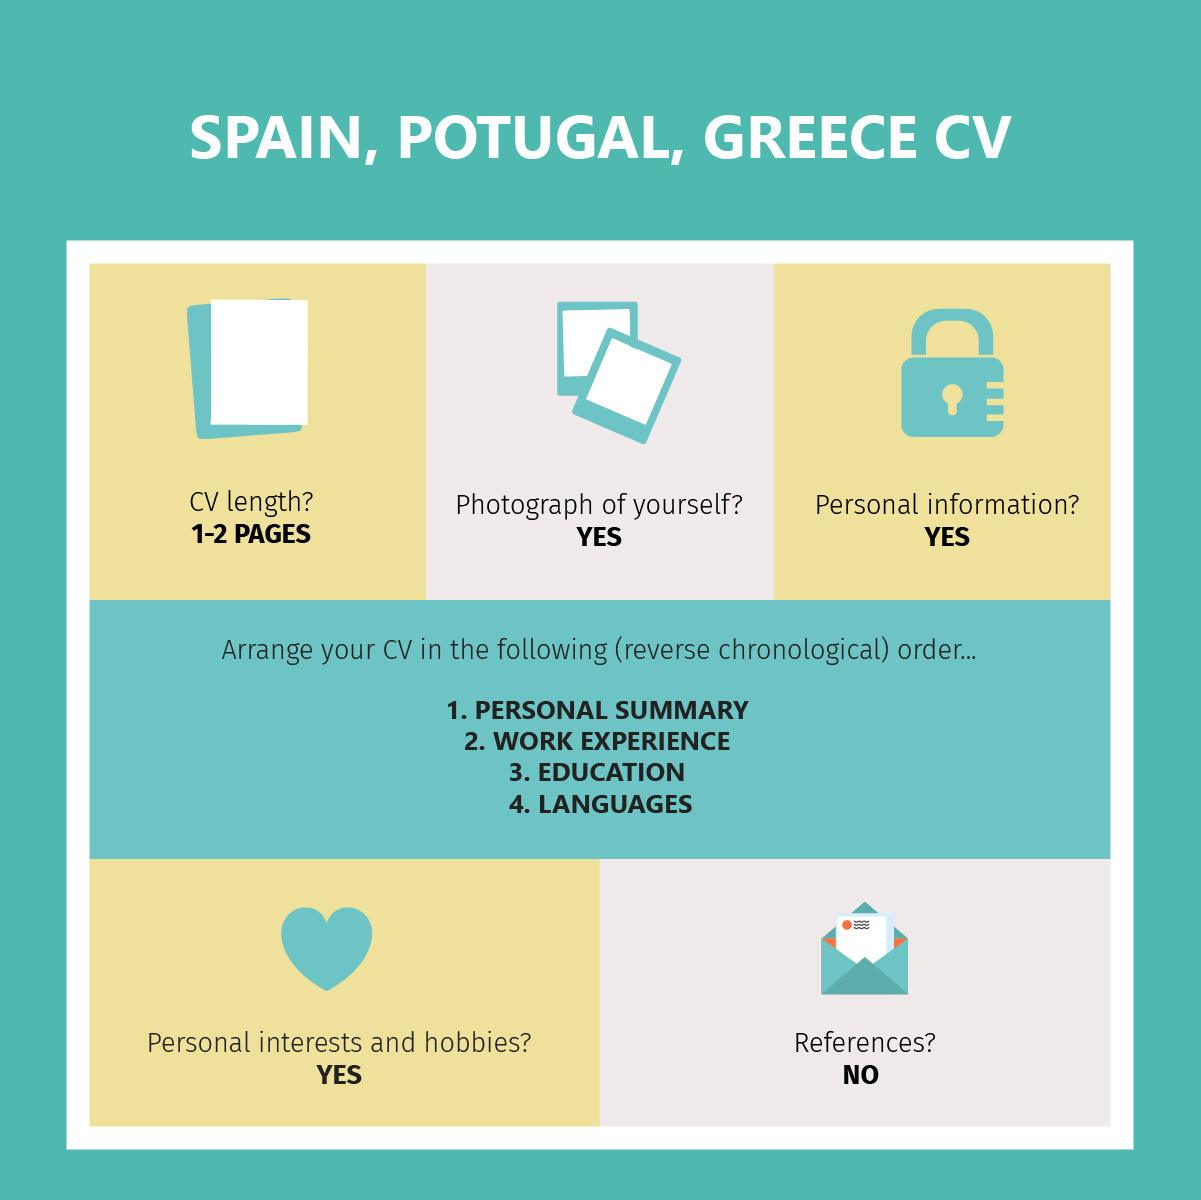 Spain, Portugal & Greece CVs